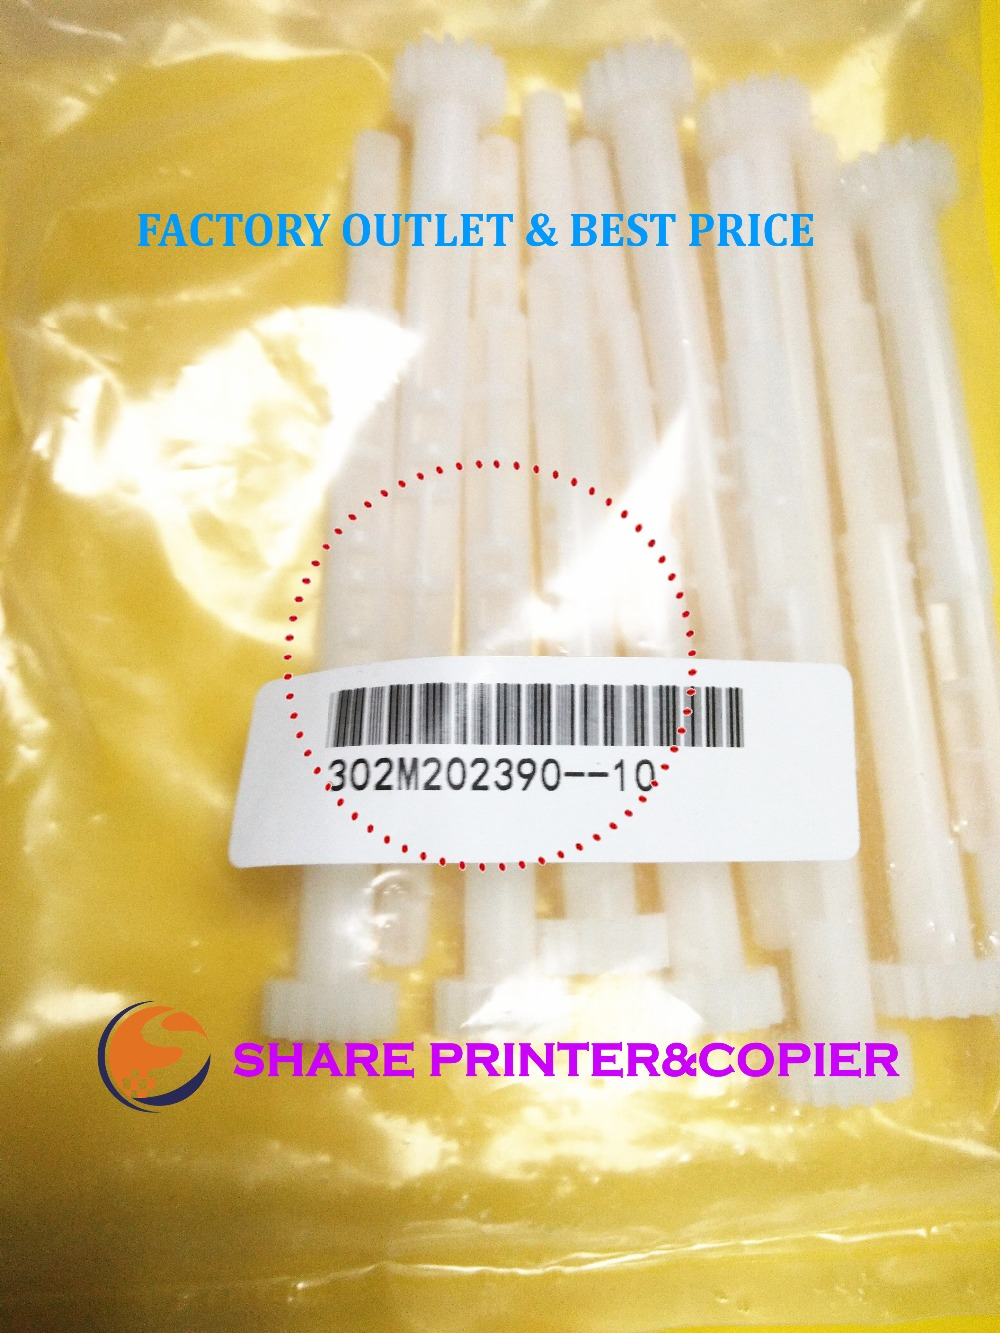 SHARE genuine drive gear waste Z16S 302M202390 2M202390 For kyocera FS-1040 1060 1020 1120 1025 1125 P1025 M1025 M1520 недорго, оригинальная цена